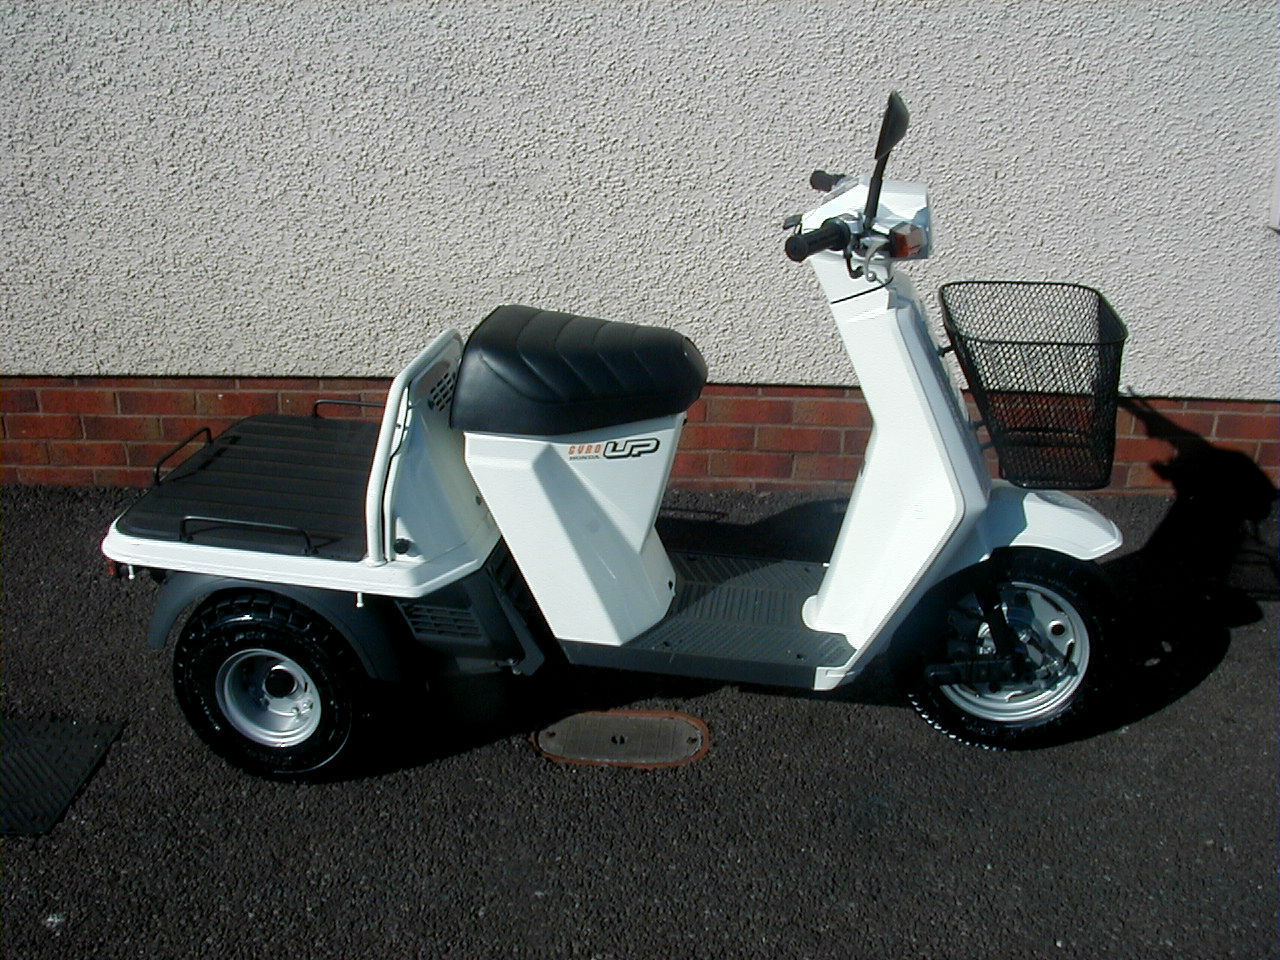 honda gyro up 3 wheeled scooter 50cc two stroke large carrying capacity. Black Bedroom Furniture Sets. Home Design Ideas